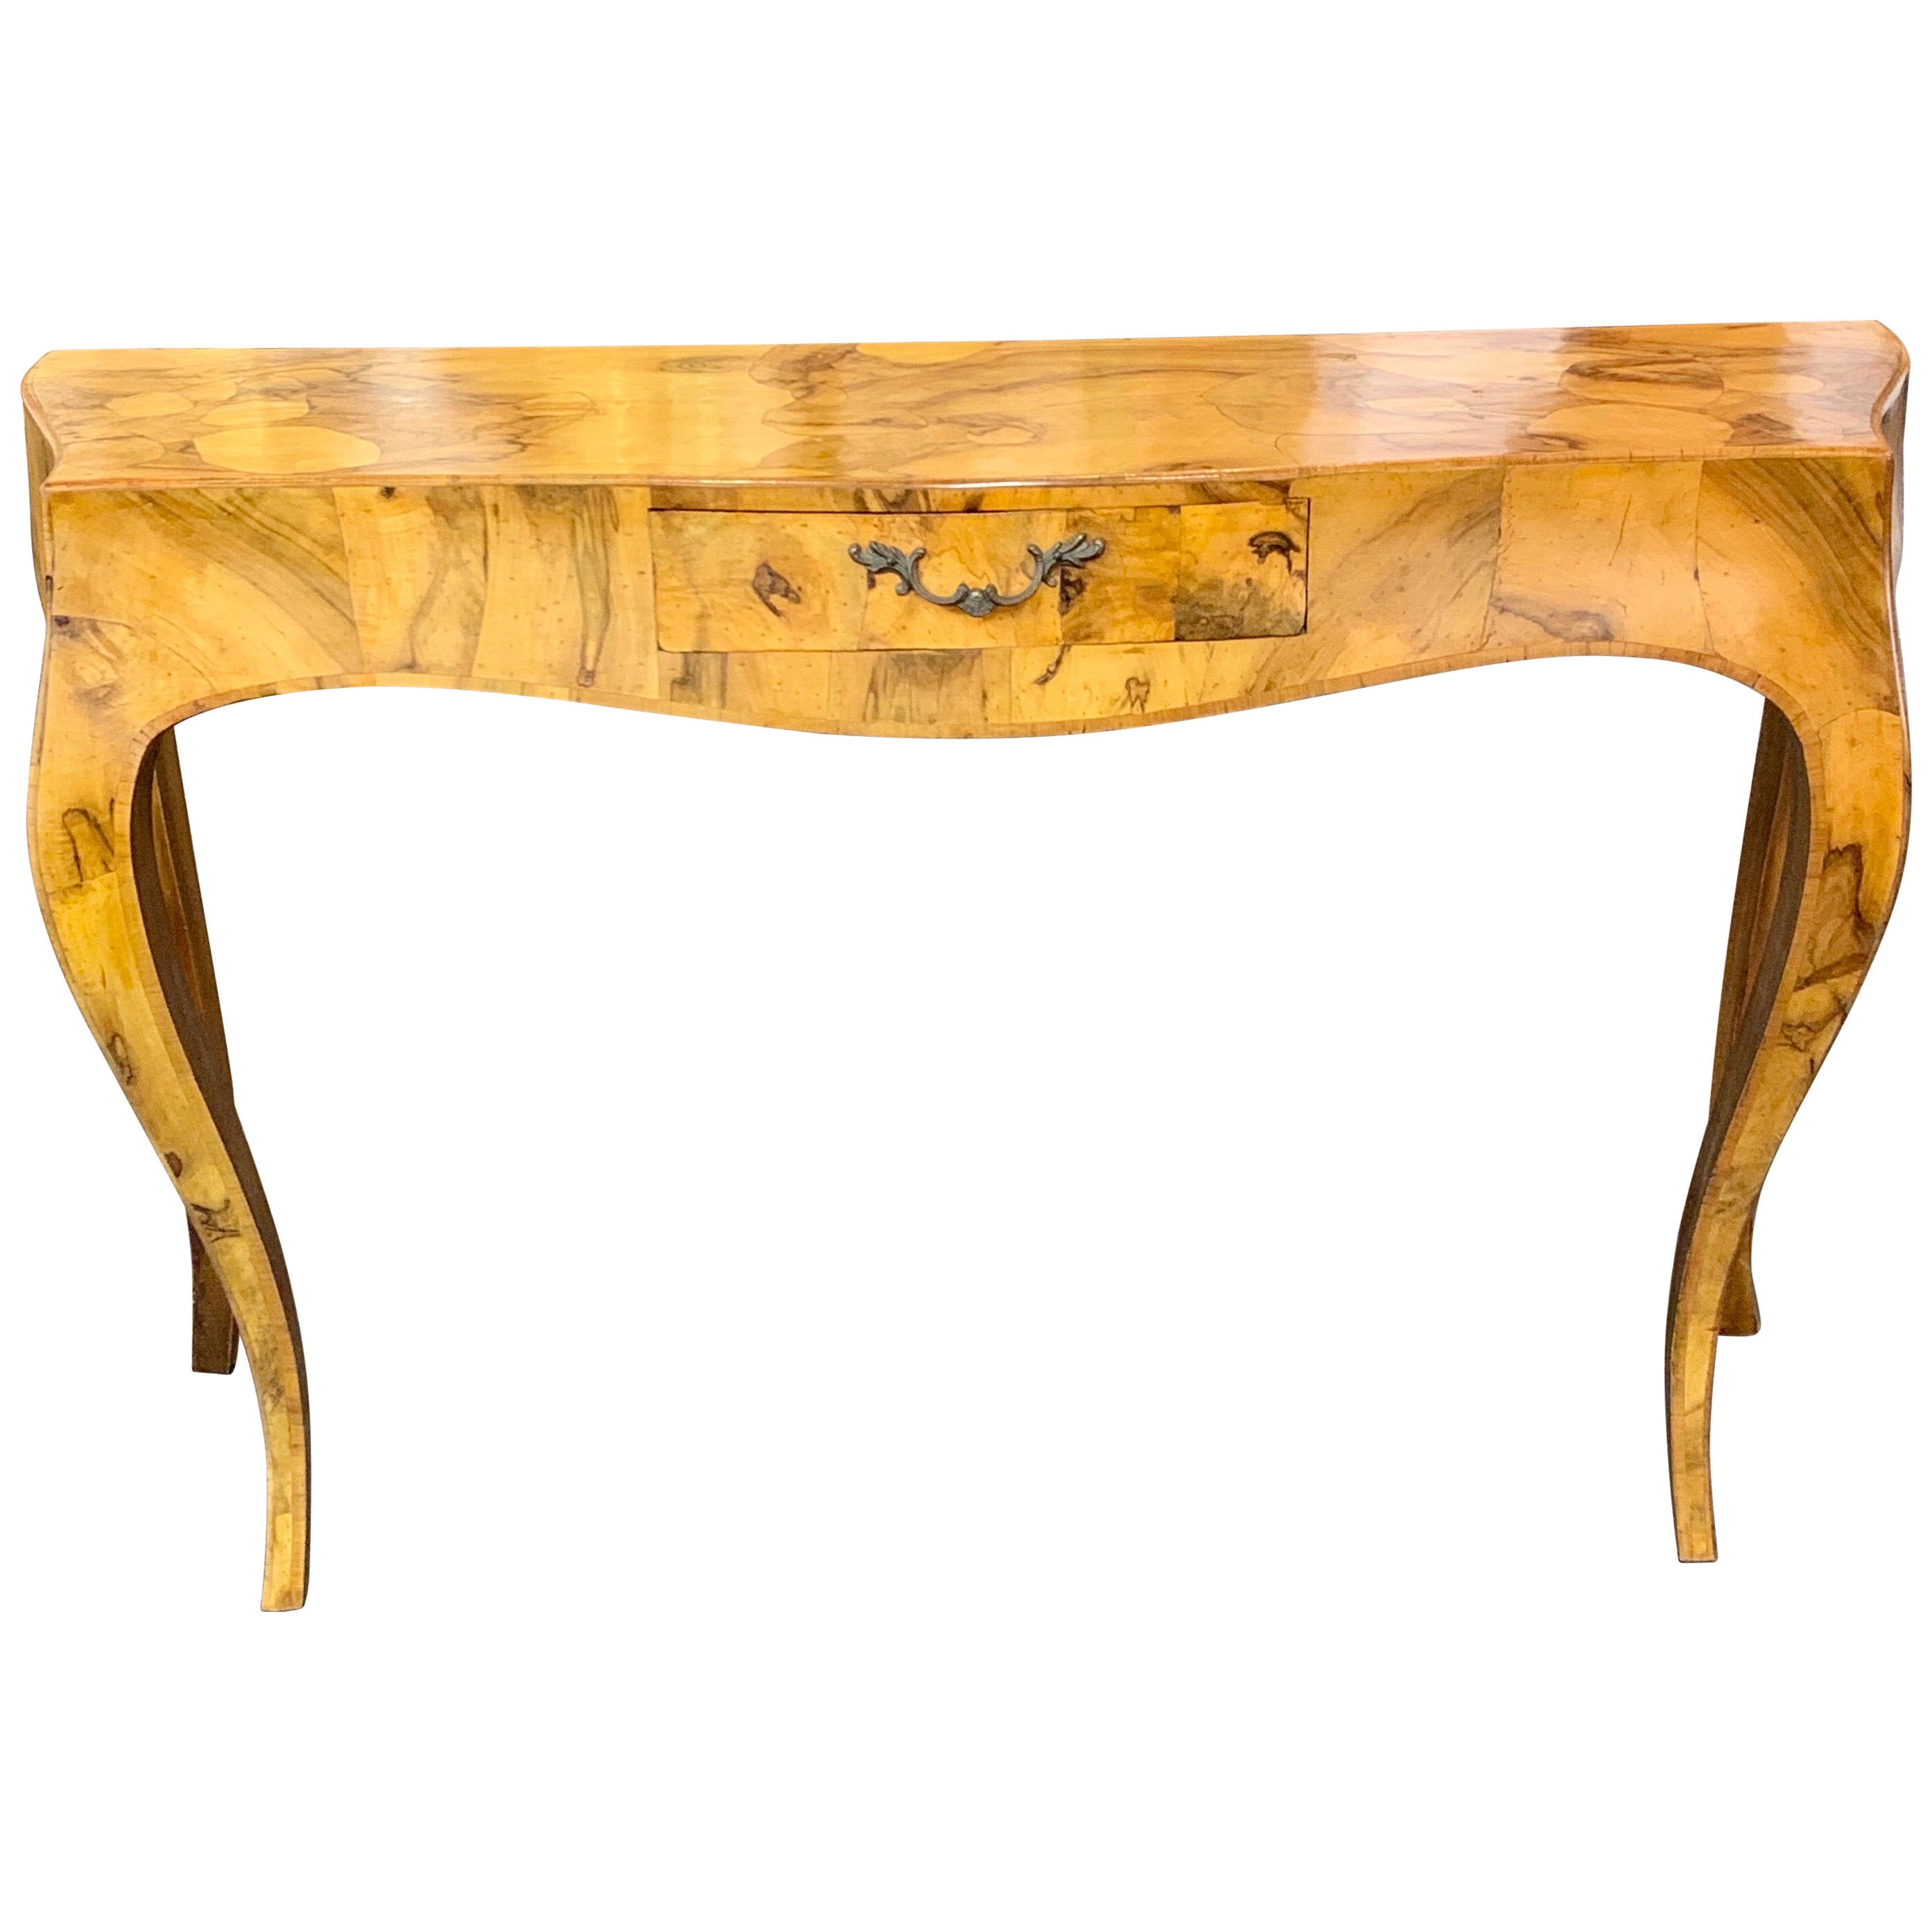 Early 20th Century Italian Burl Walnut Console